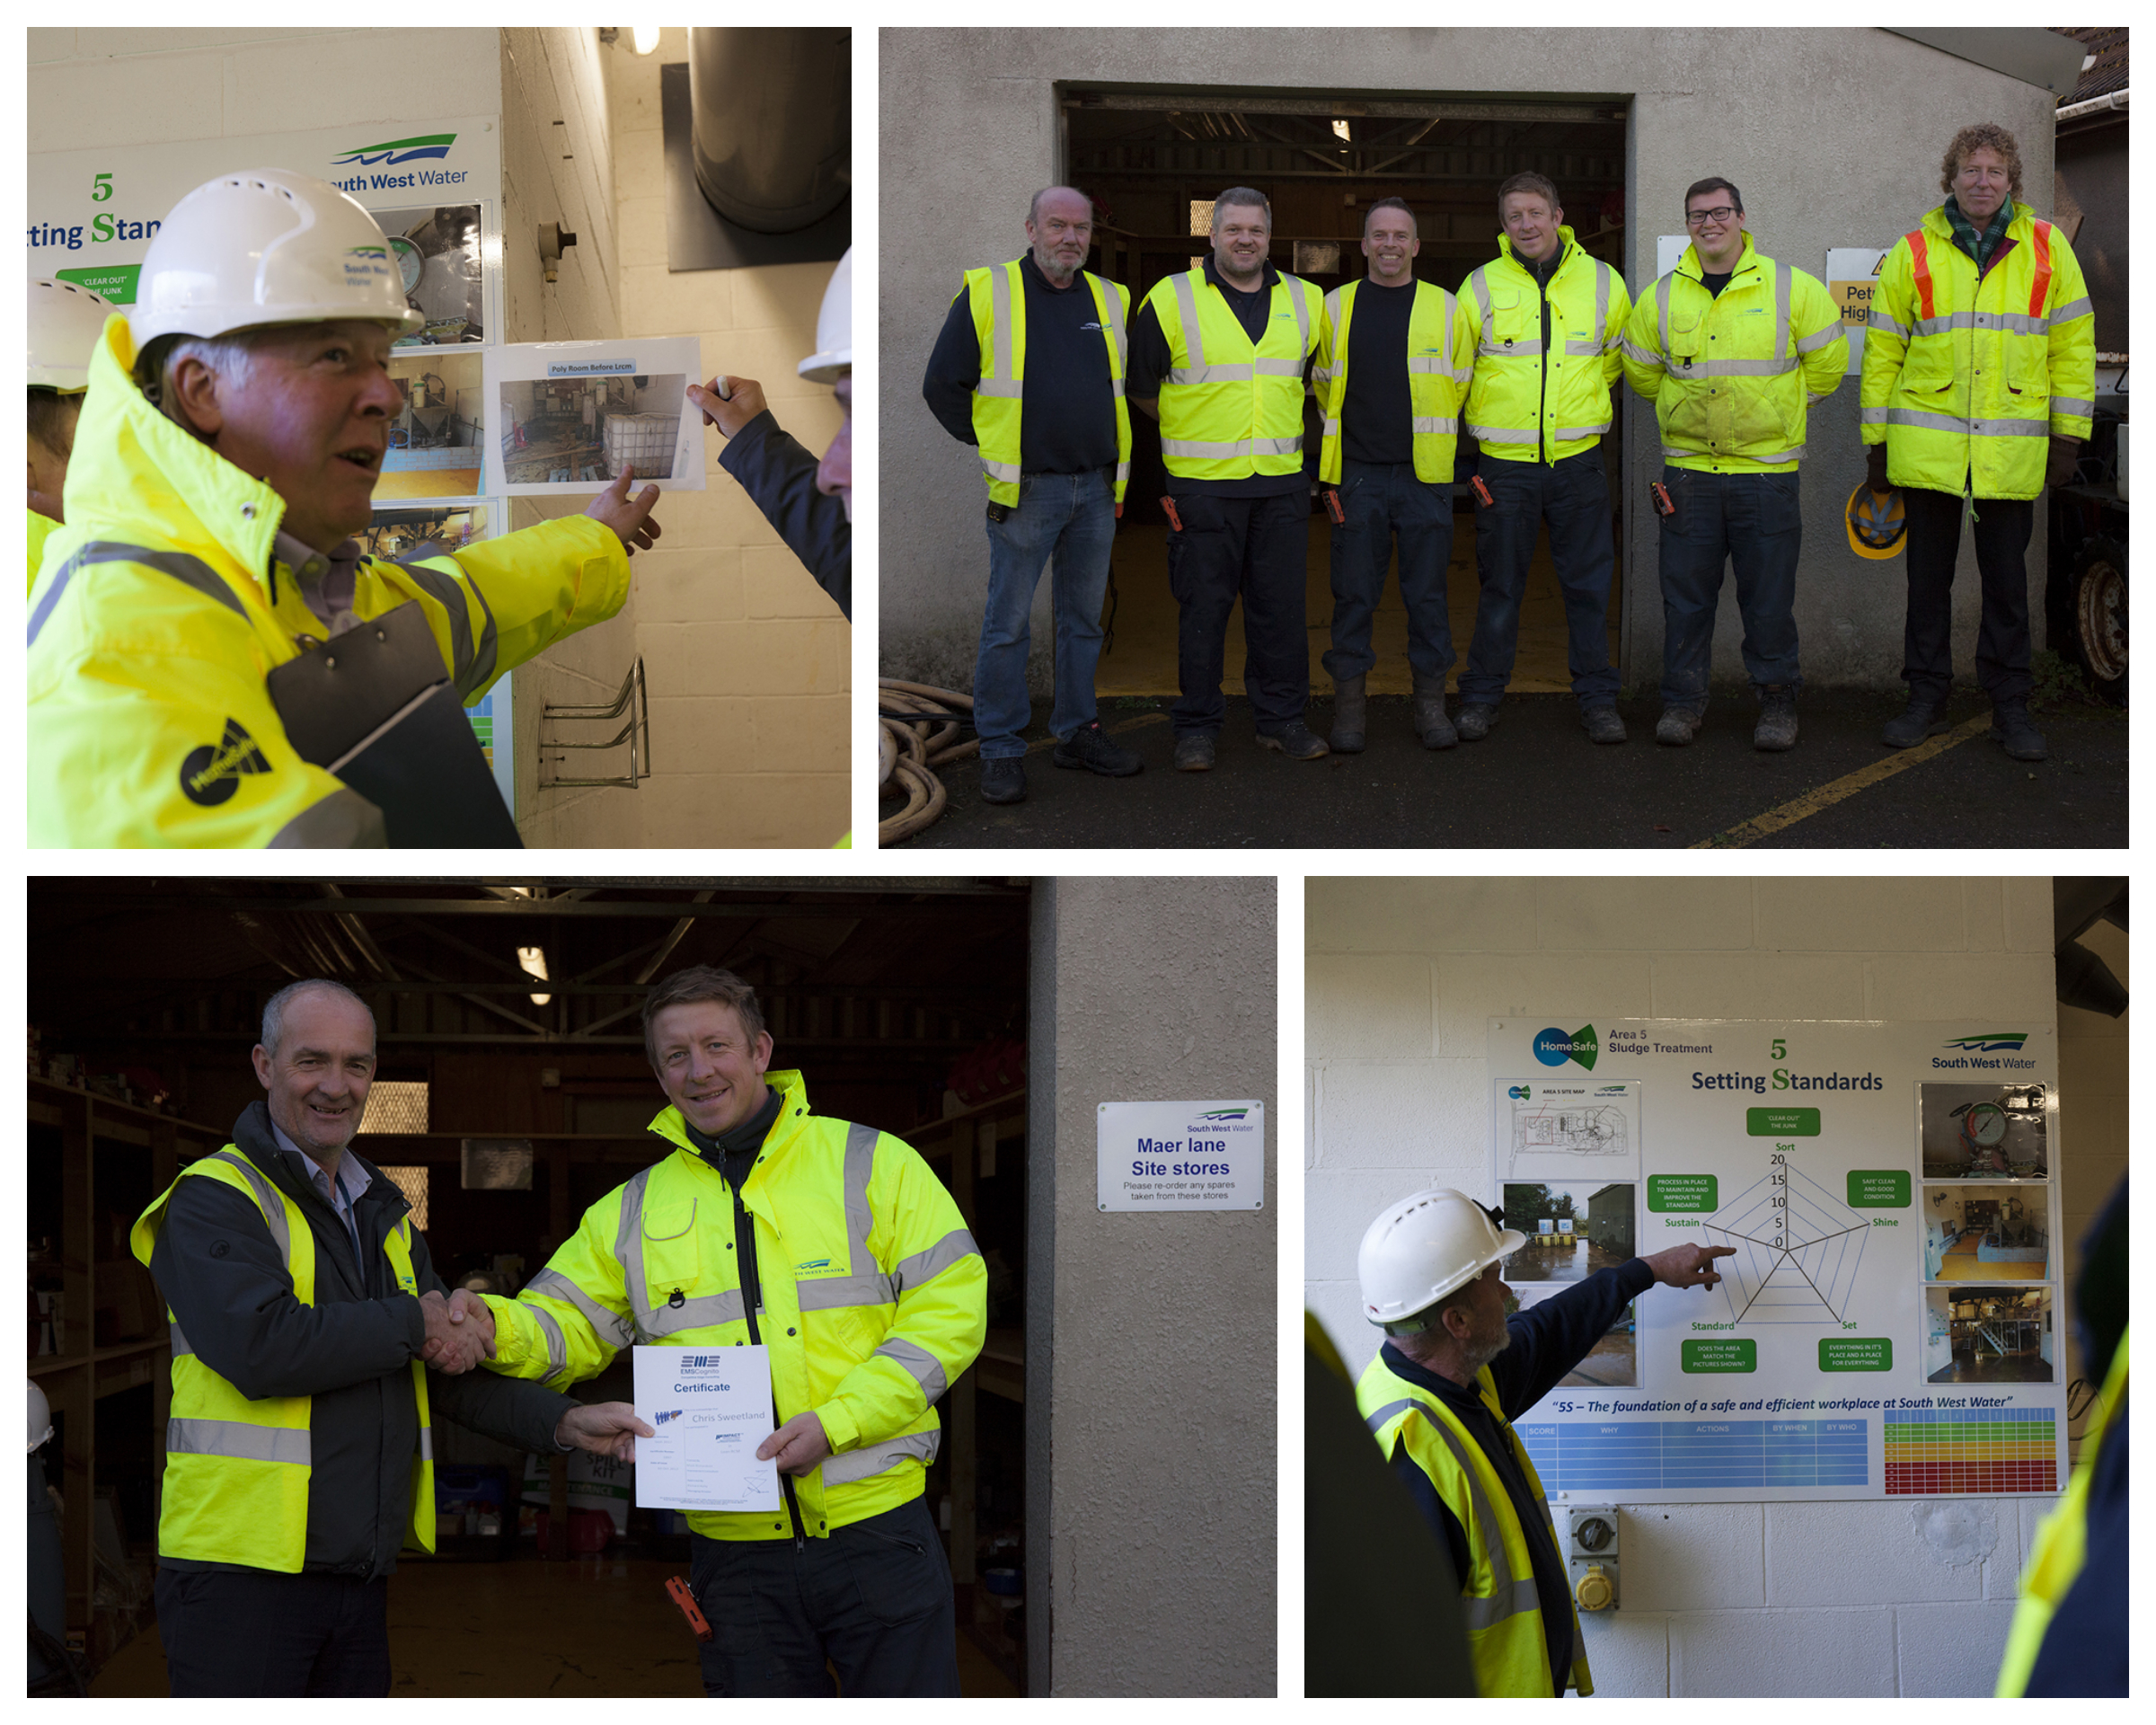 Review day IMPACT Masterclass™ Lean RCM programme at South West Water Exmouth